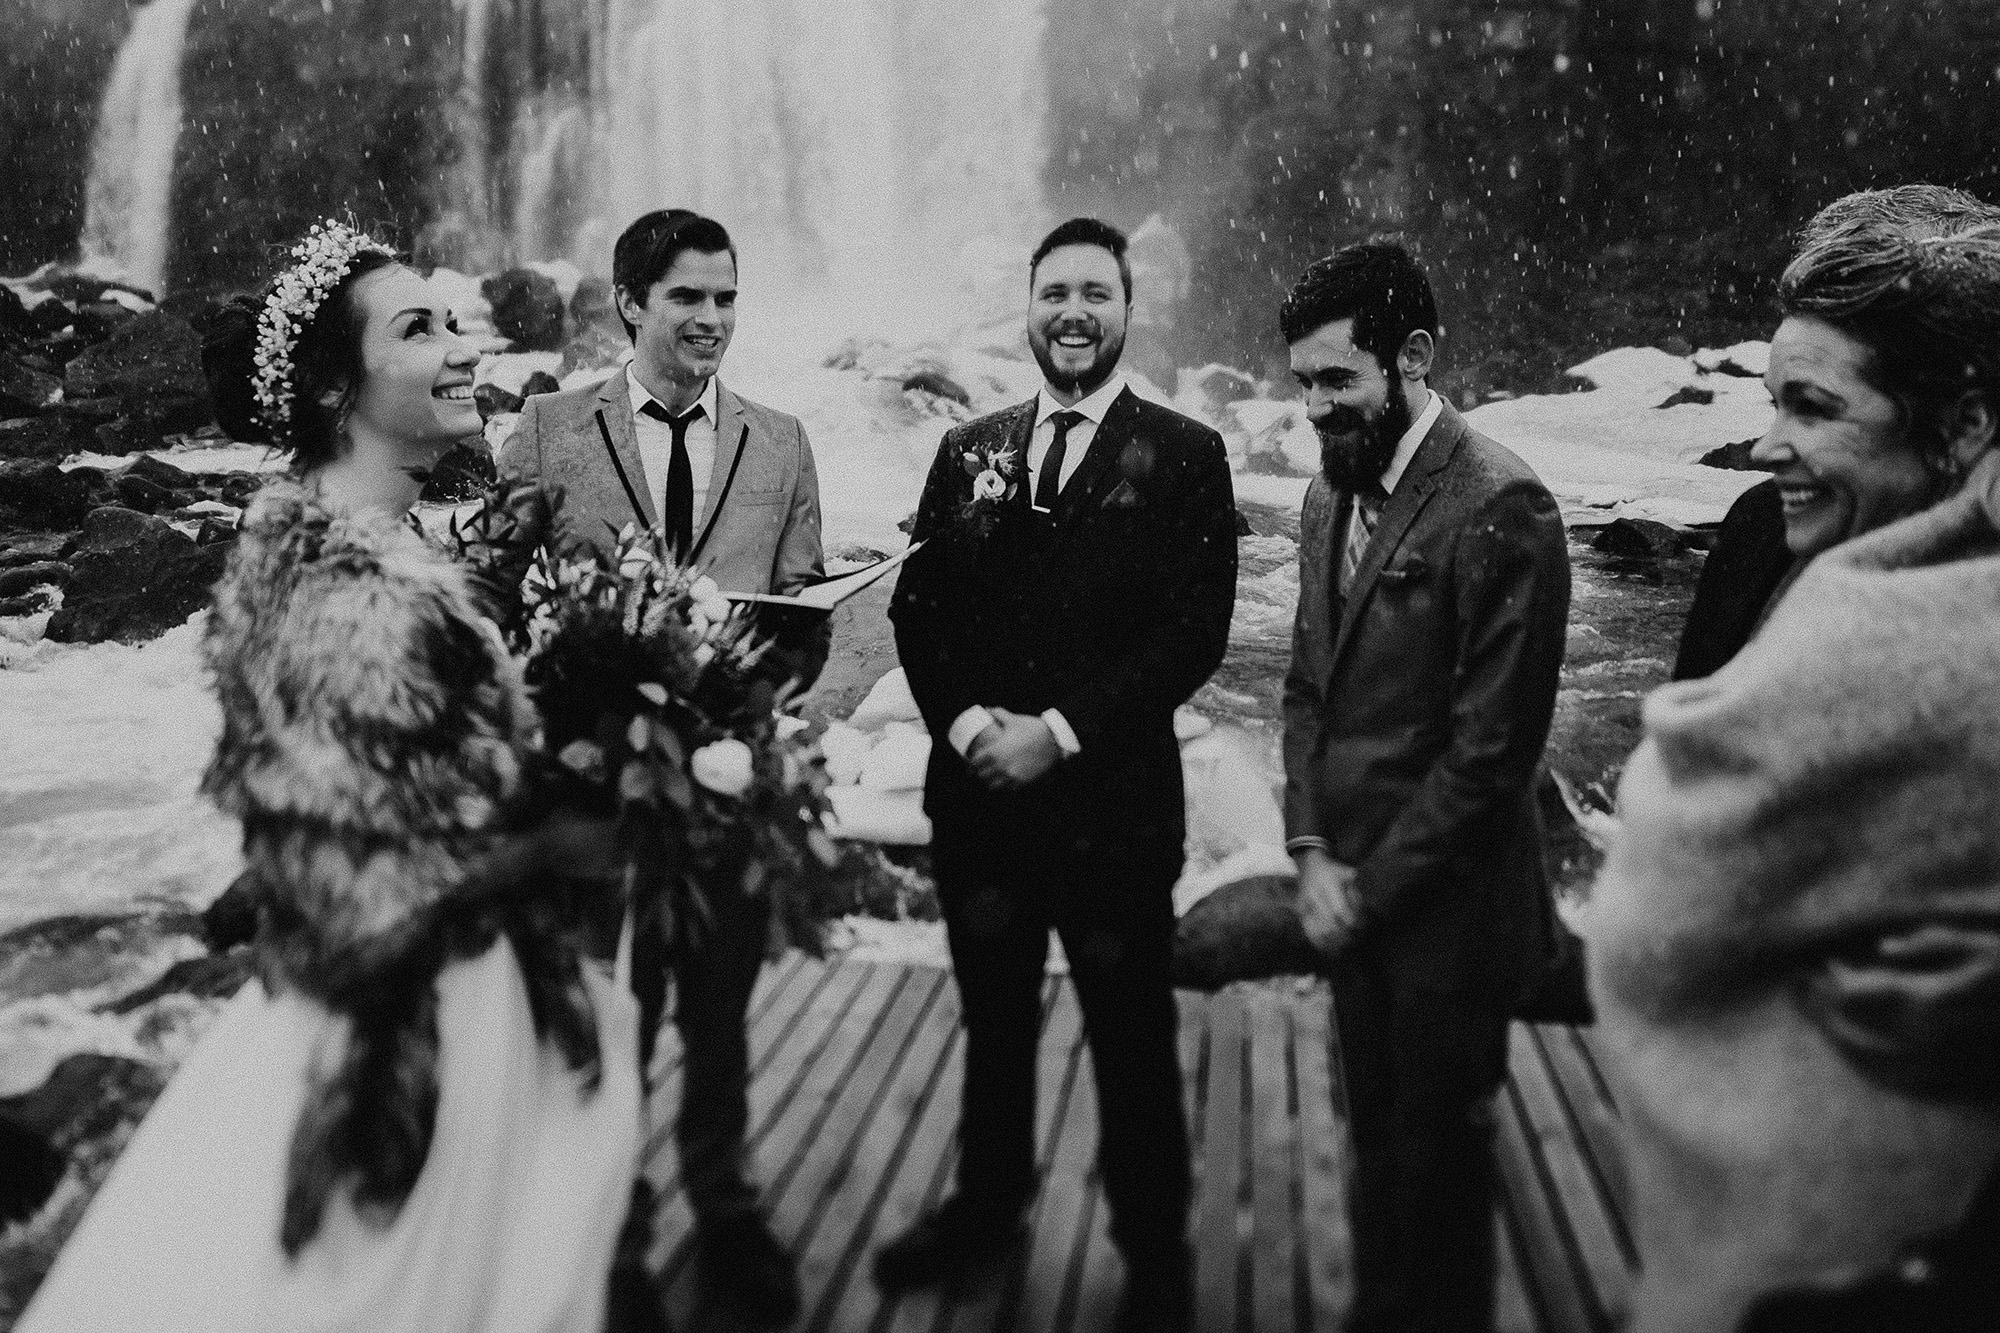 Forged_in_the_North_-_Iceland_Destination_Wedding_2.jpg